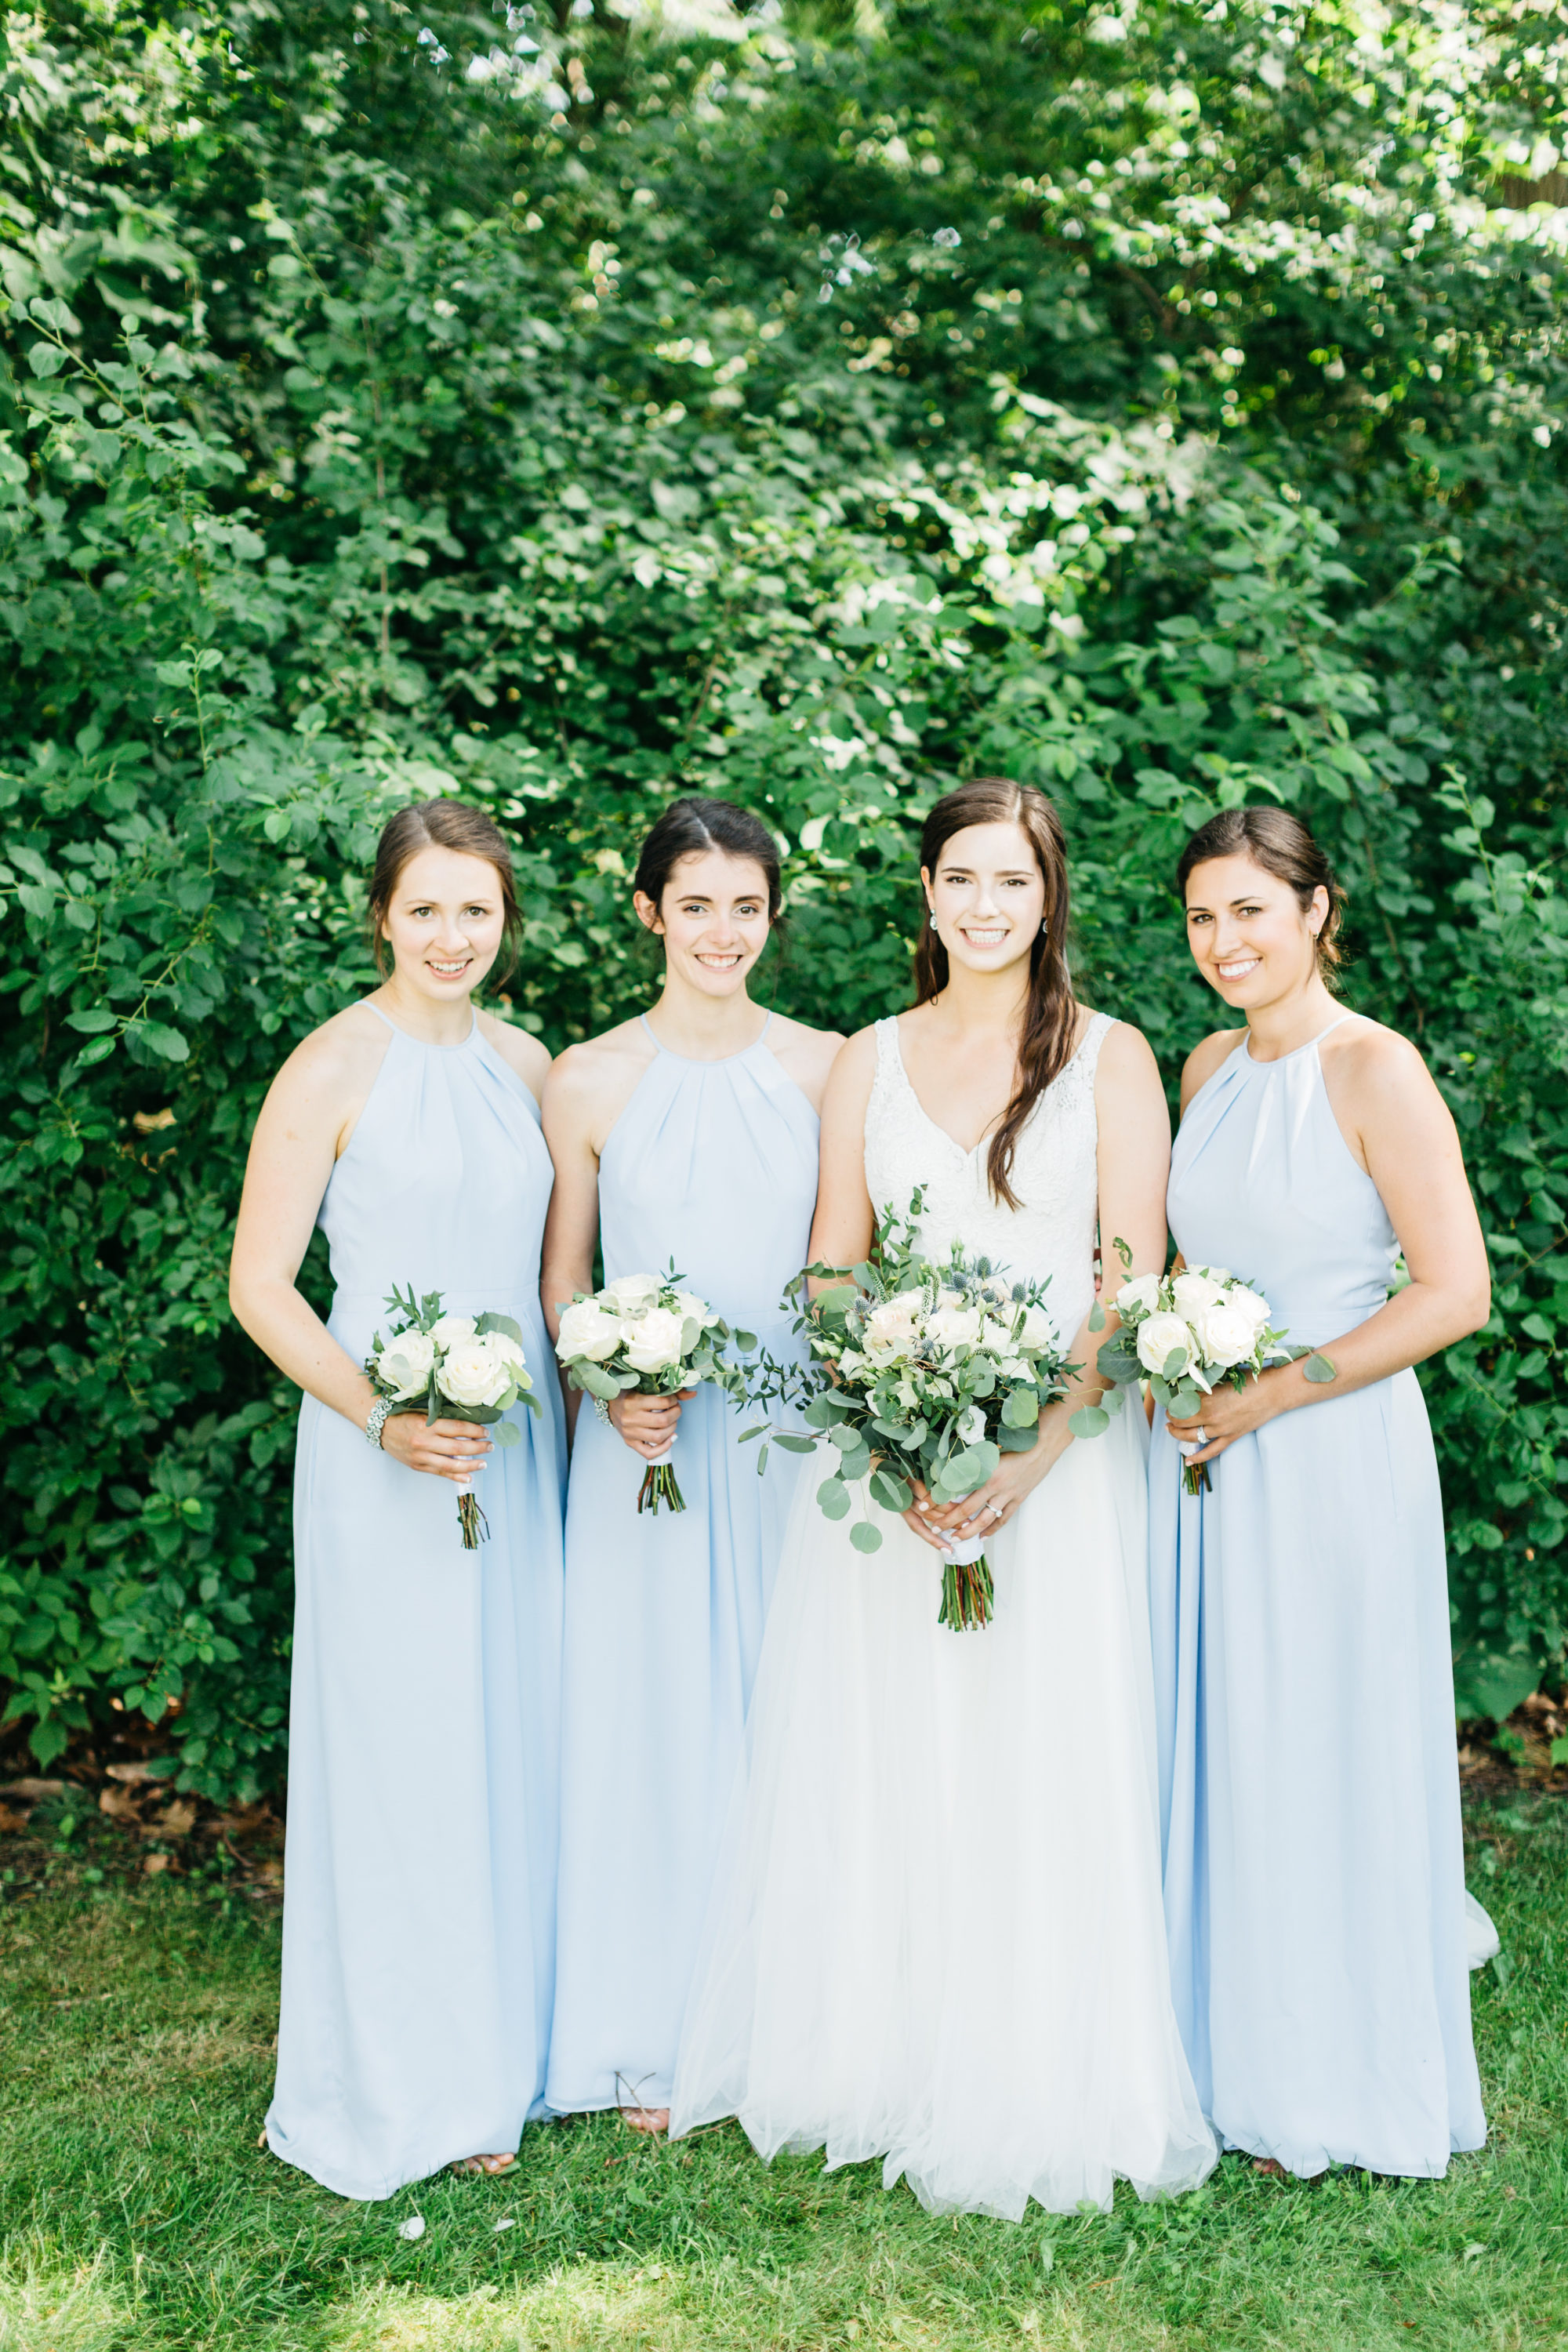 Bride and bridesmaids posing